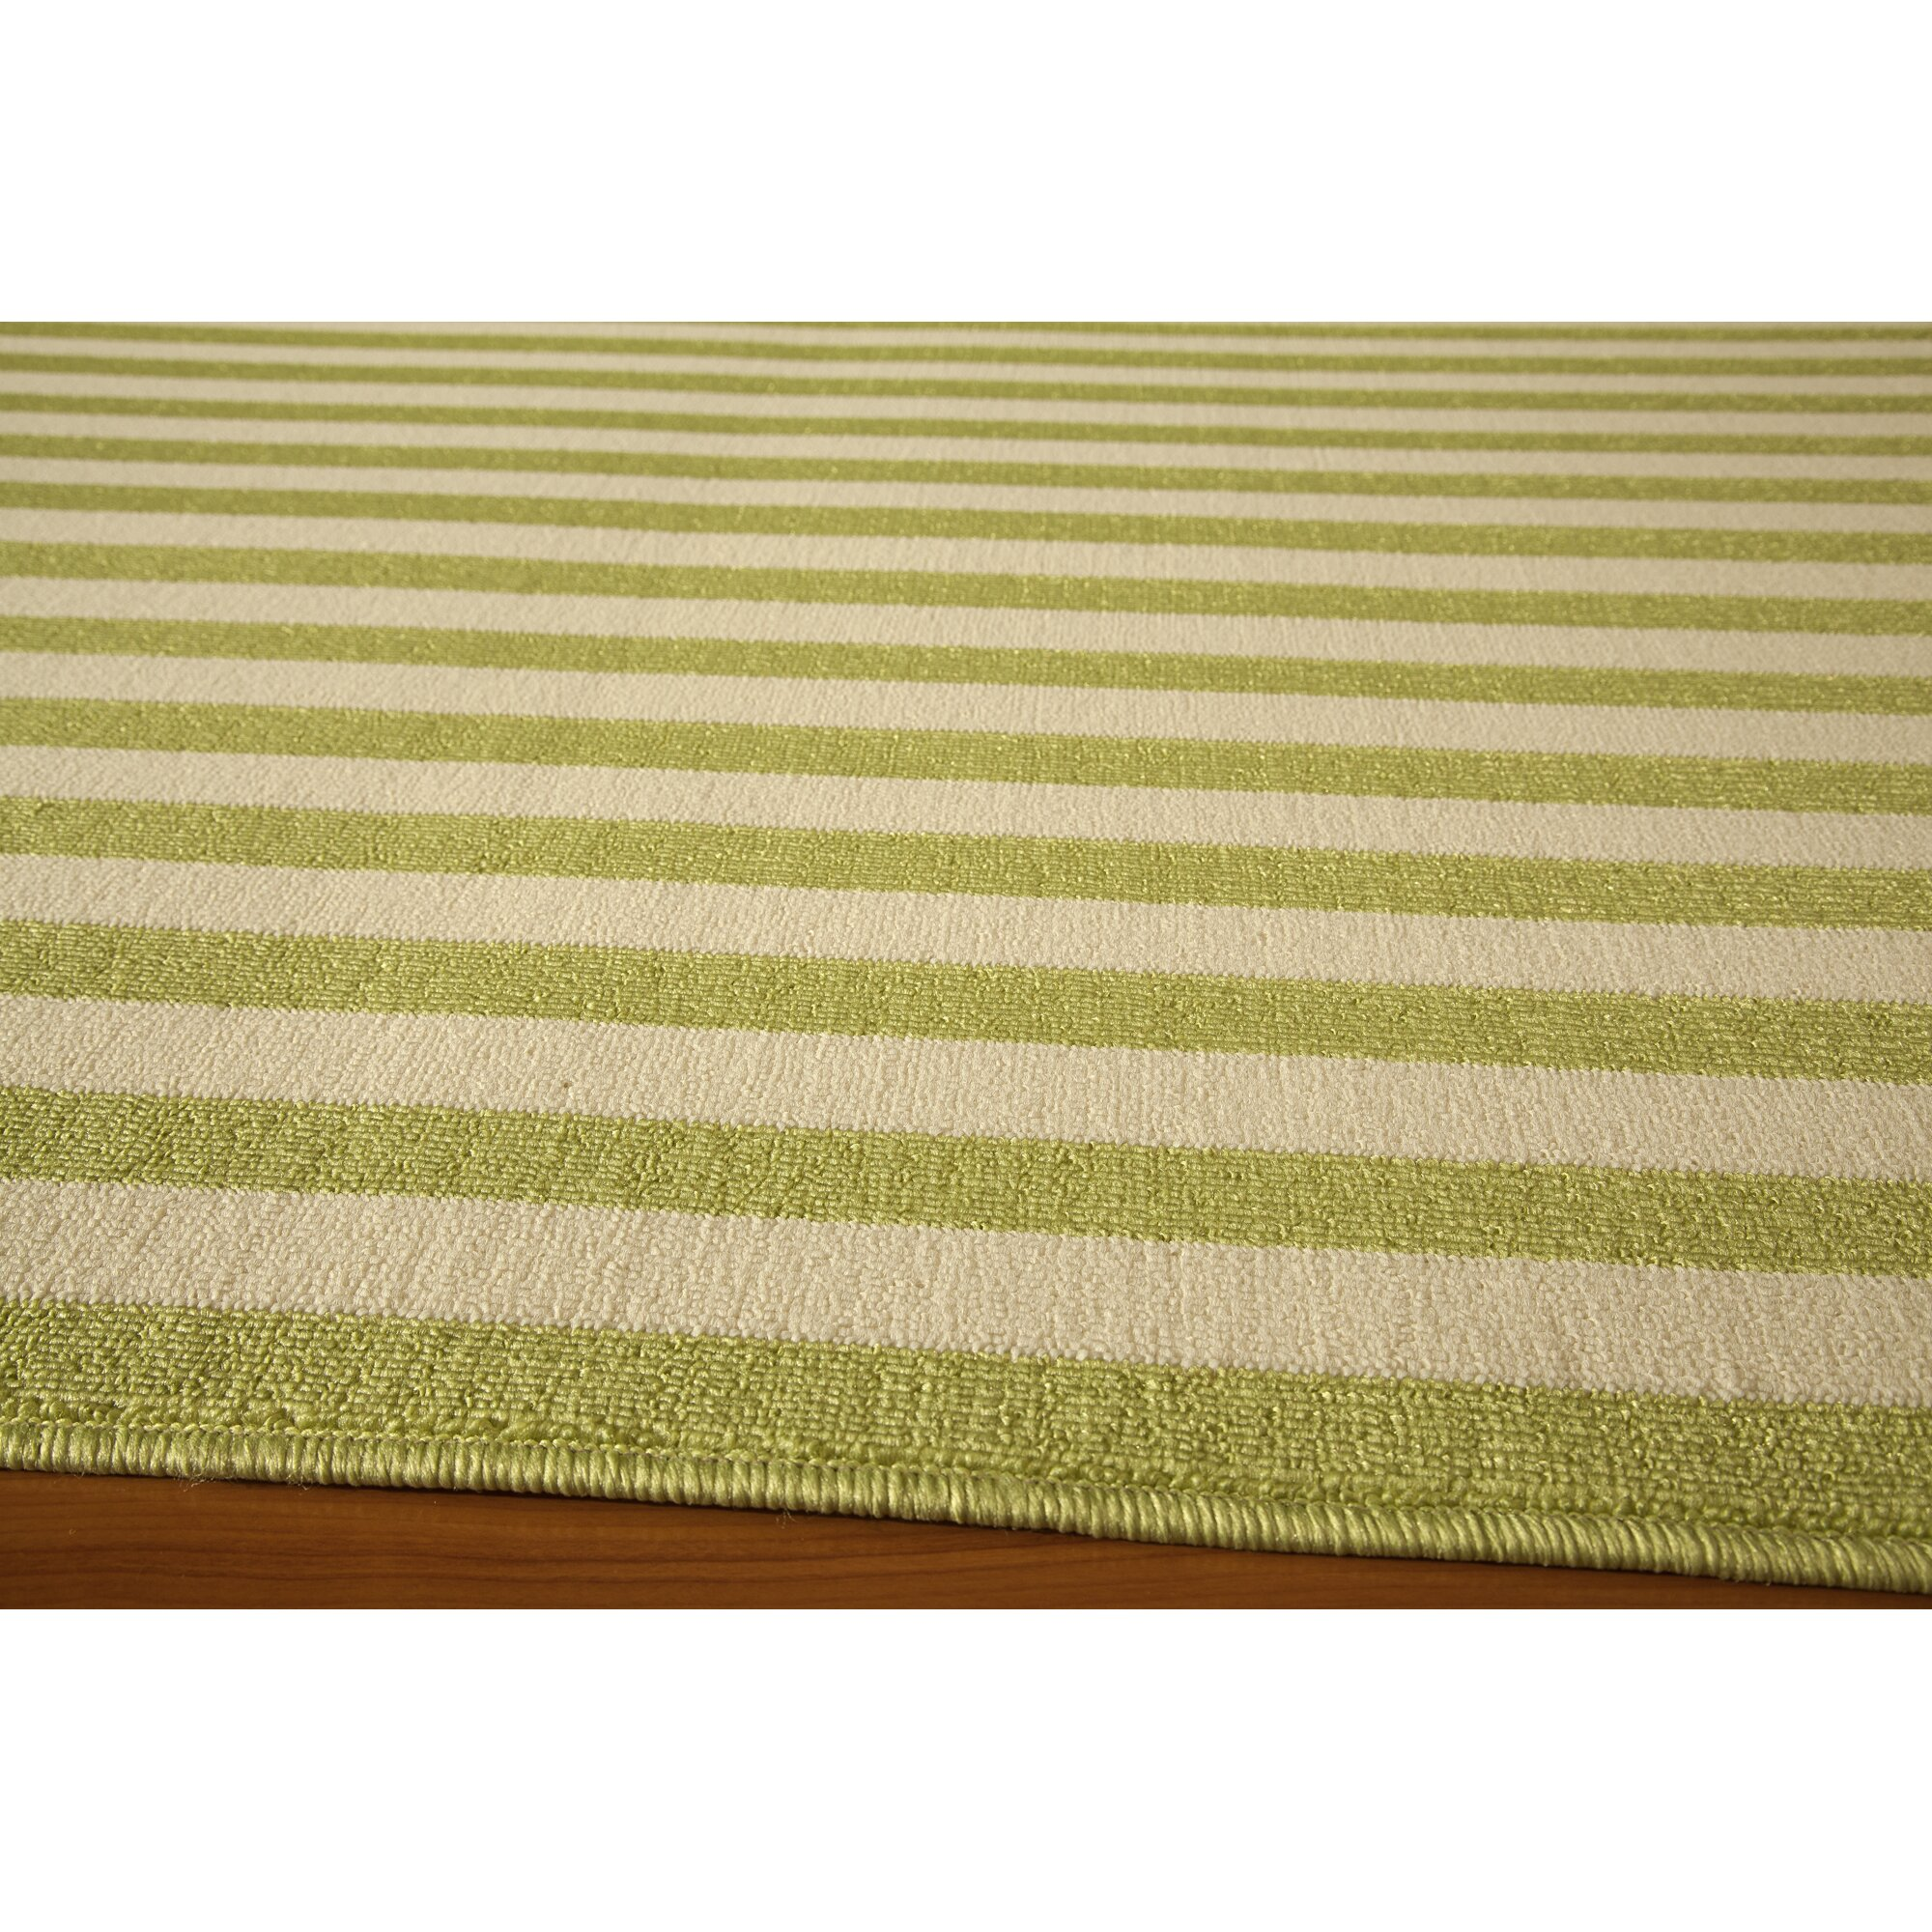 Harbeson green indoor outdoor area rug reviews birch lane for Indoor outdoor carpet green